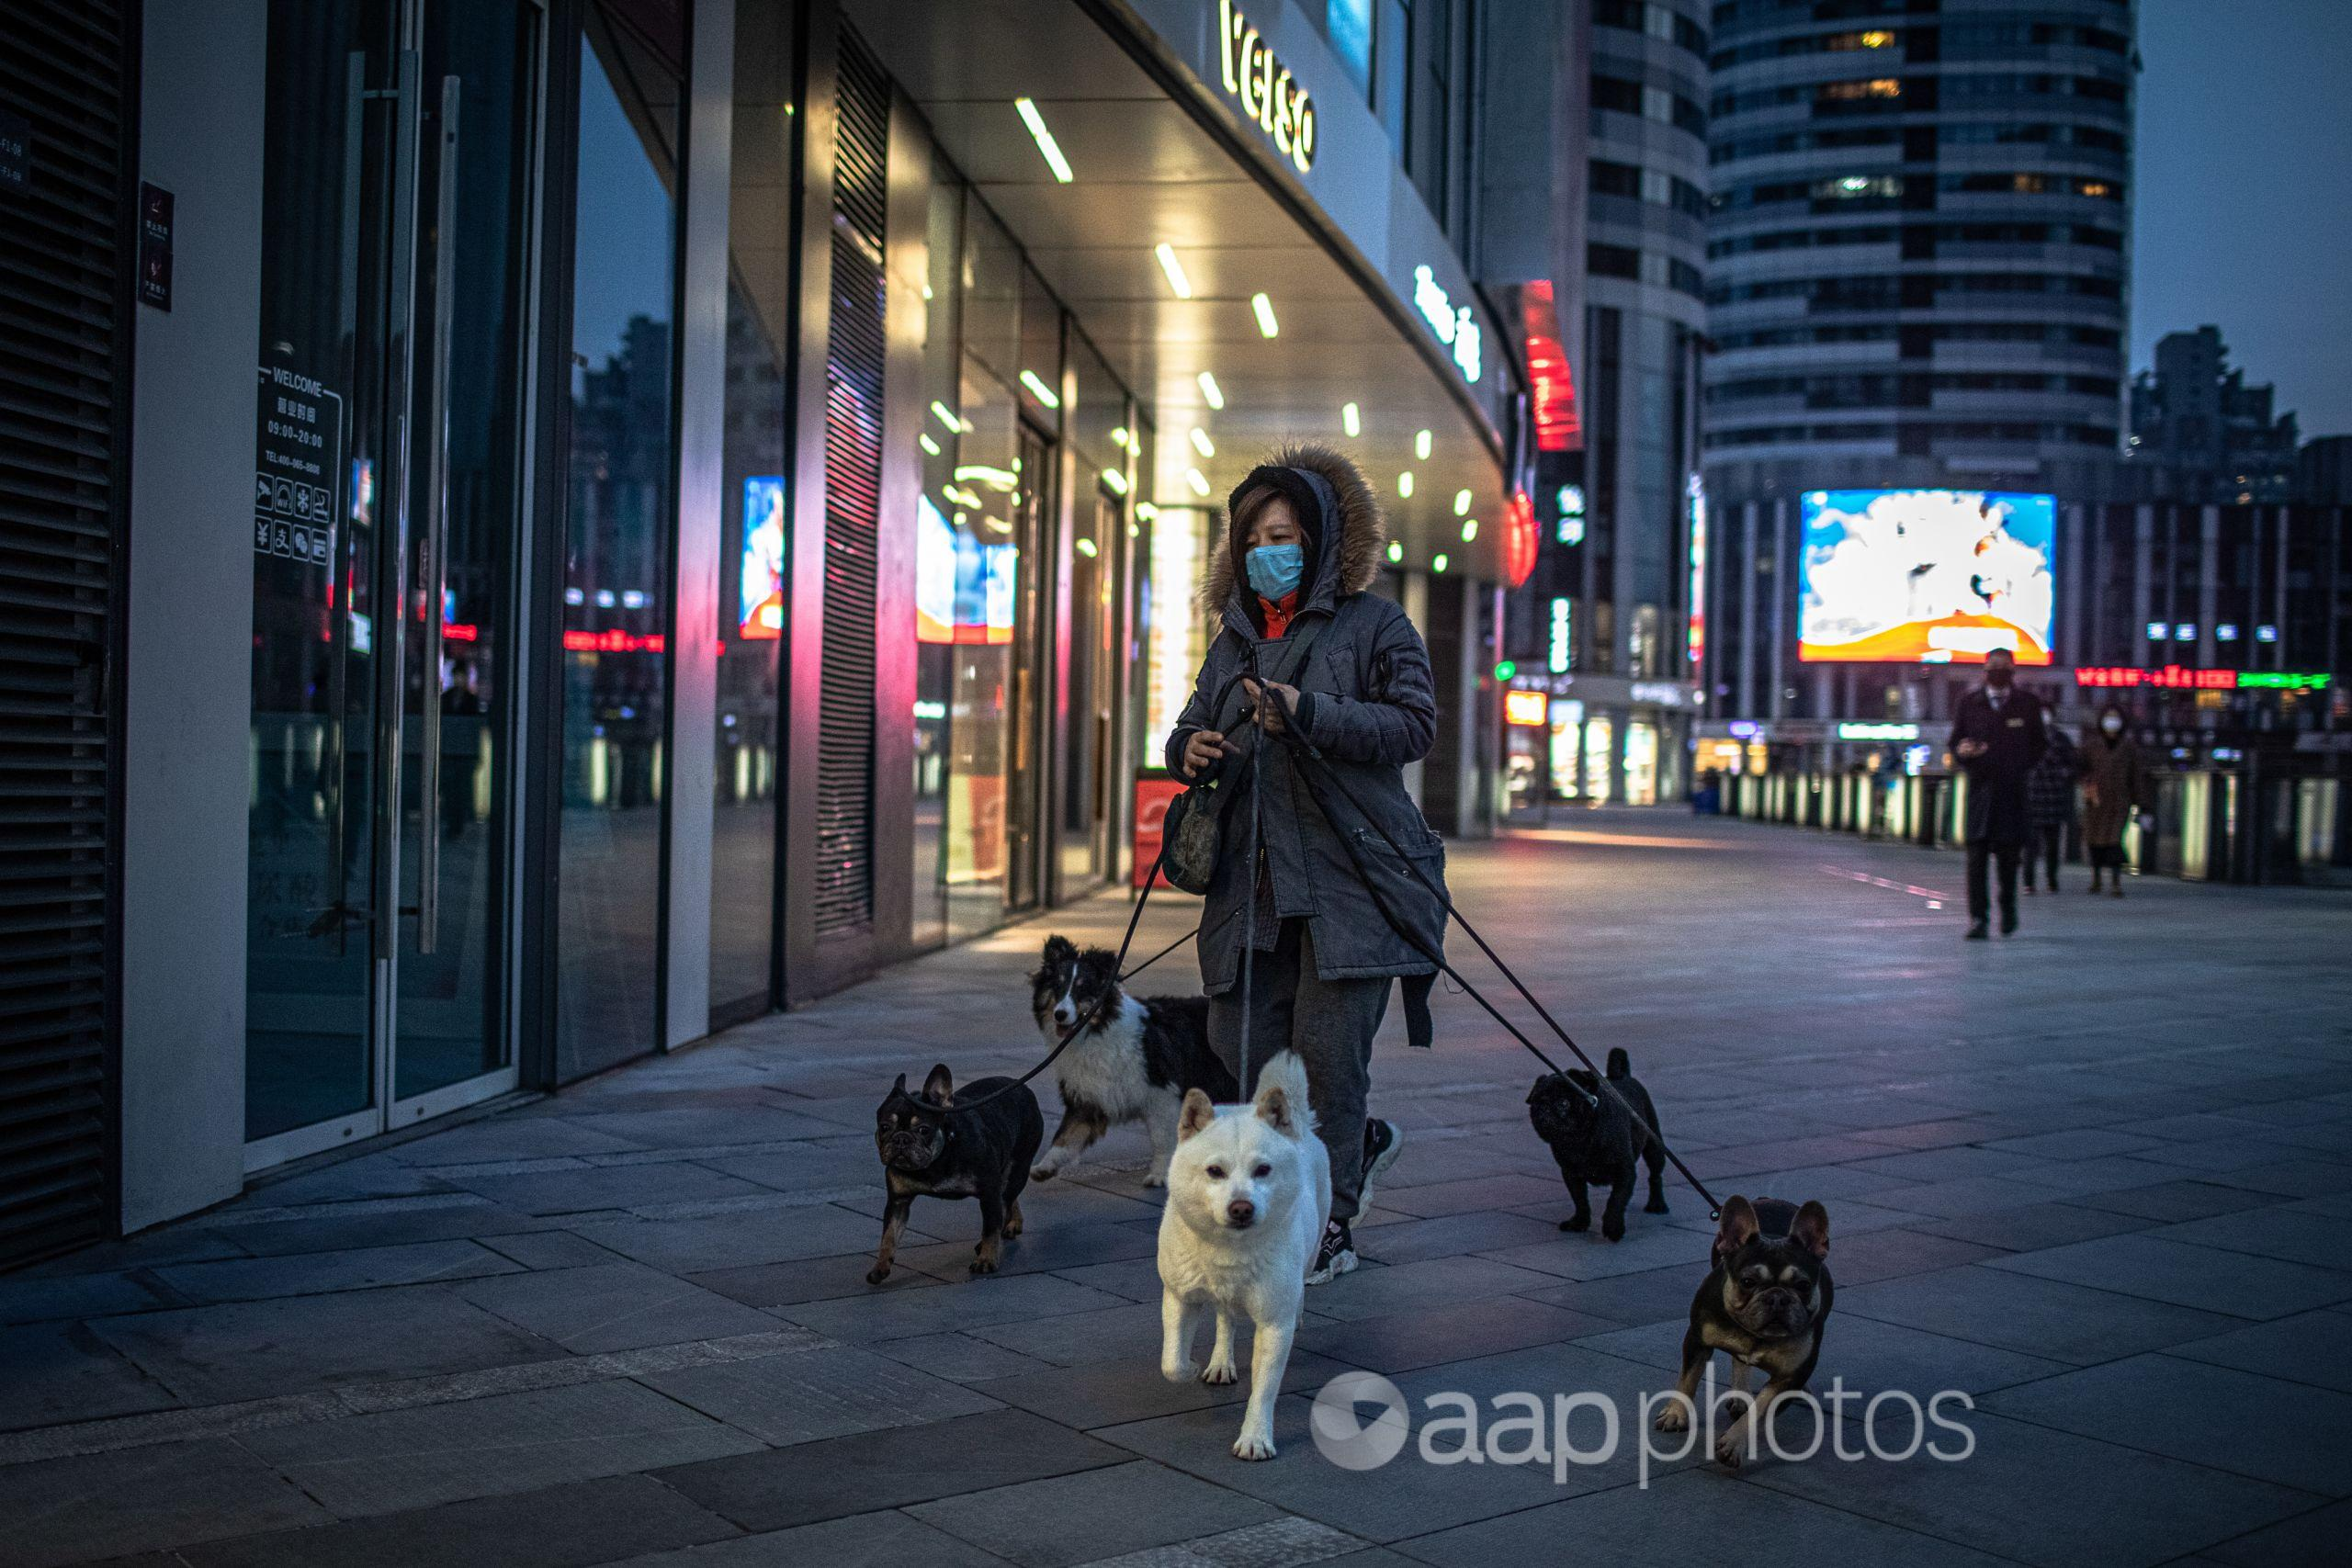 A woman wearing a protective face mask walks dogs in Beijing, China